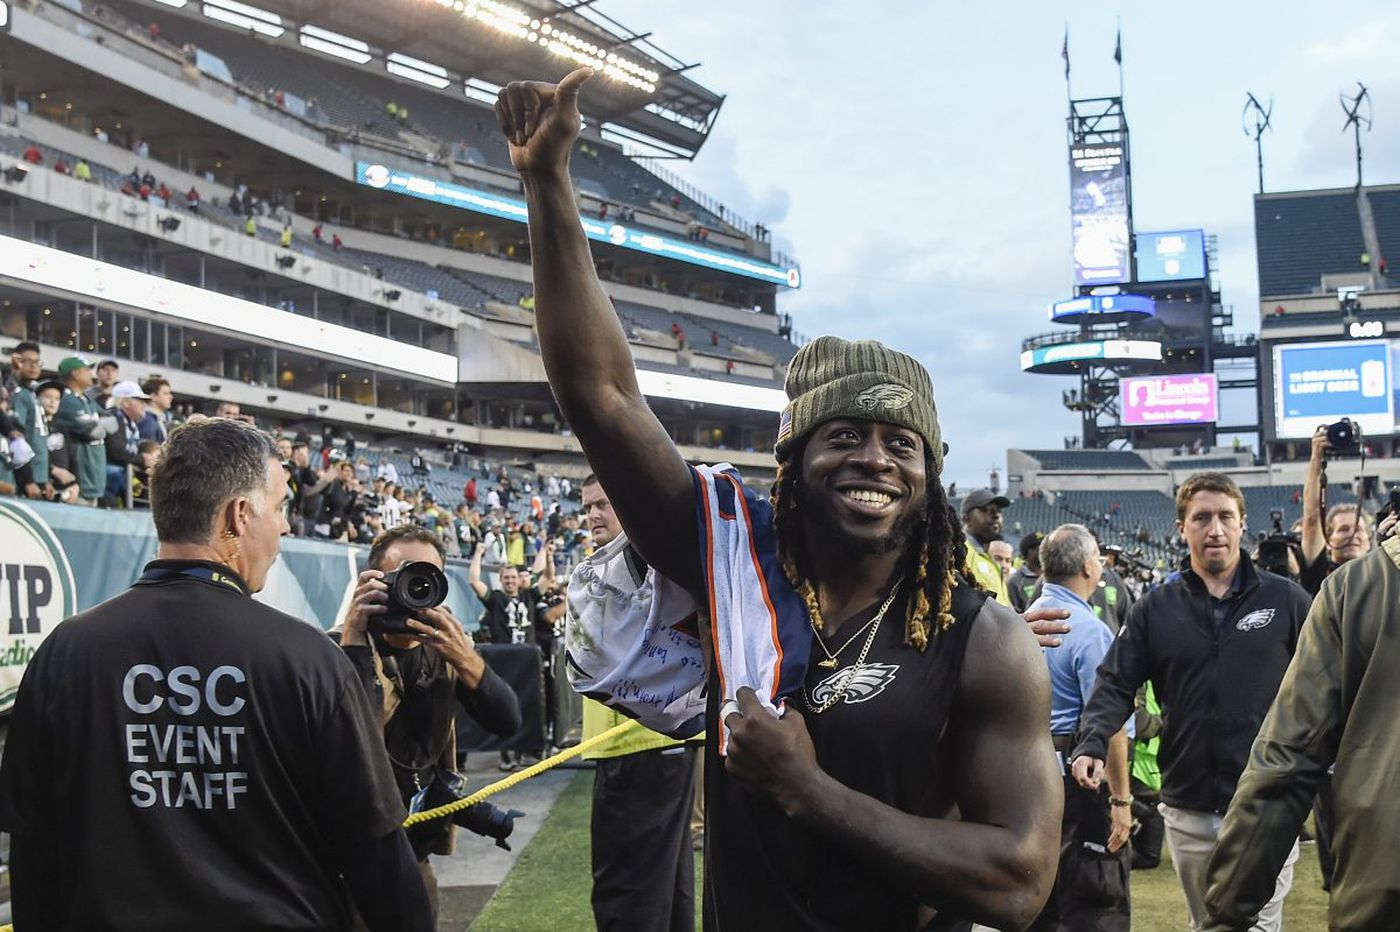 A better debut with Eagles? Jay Ajayi couldn't have asked for one | Mike Sielski